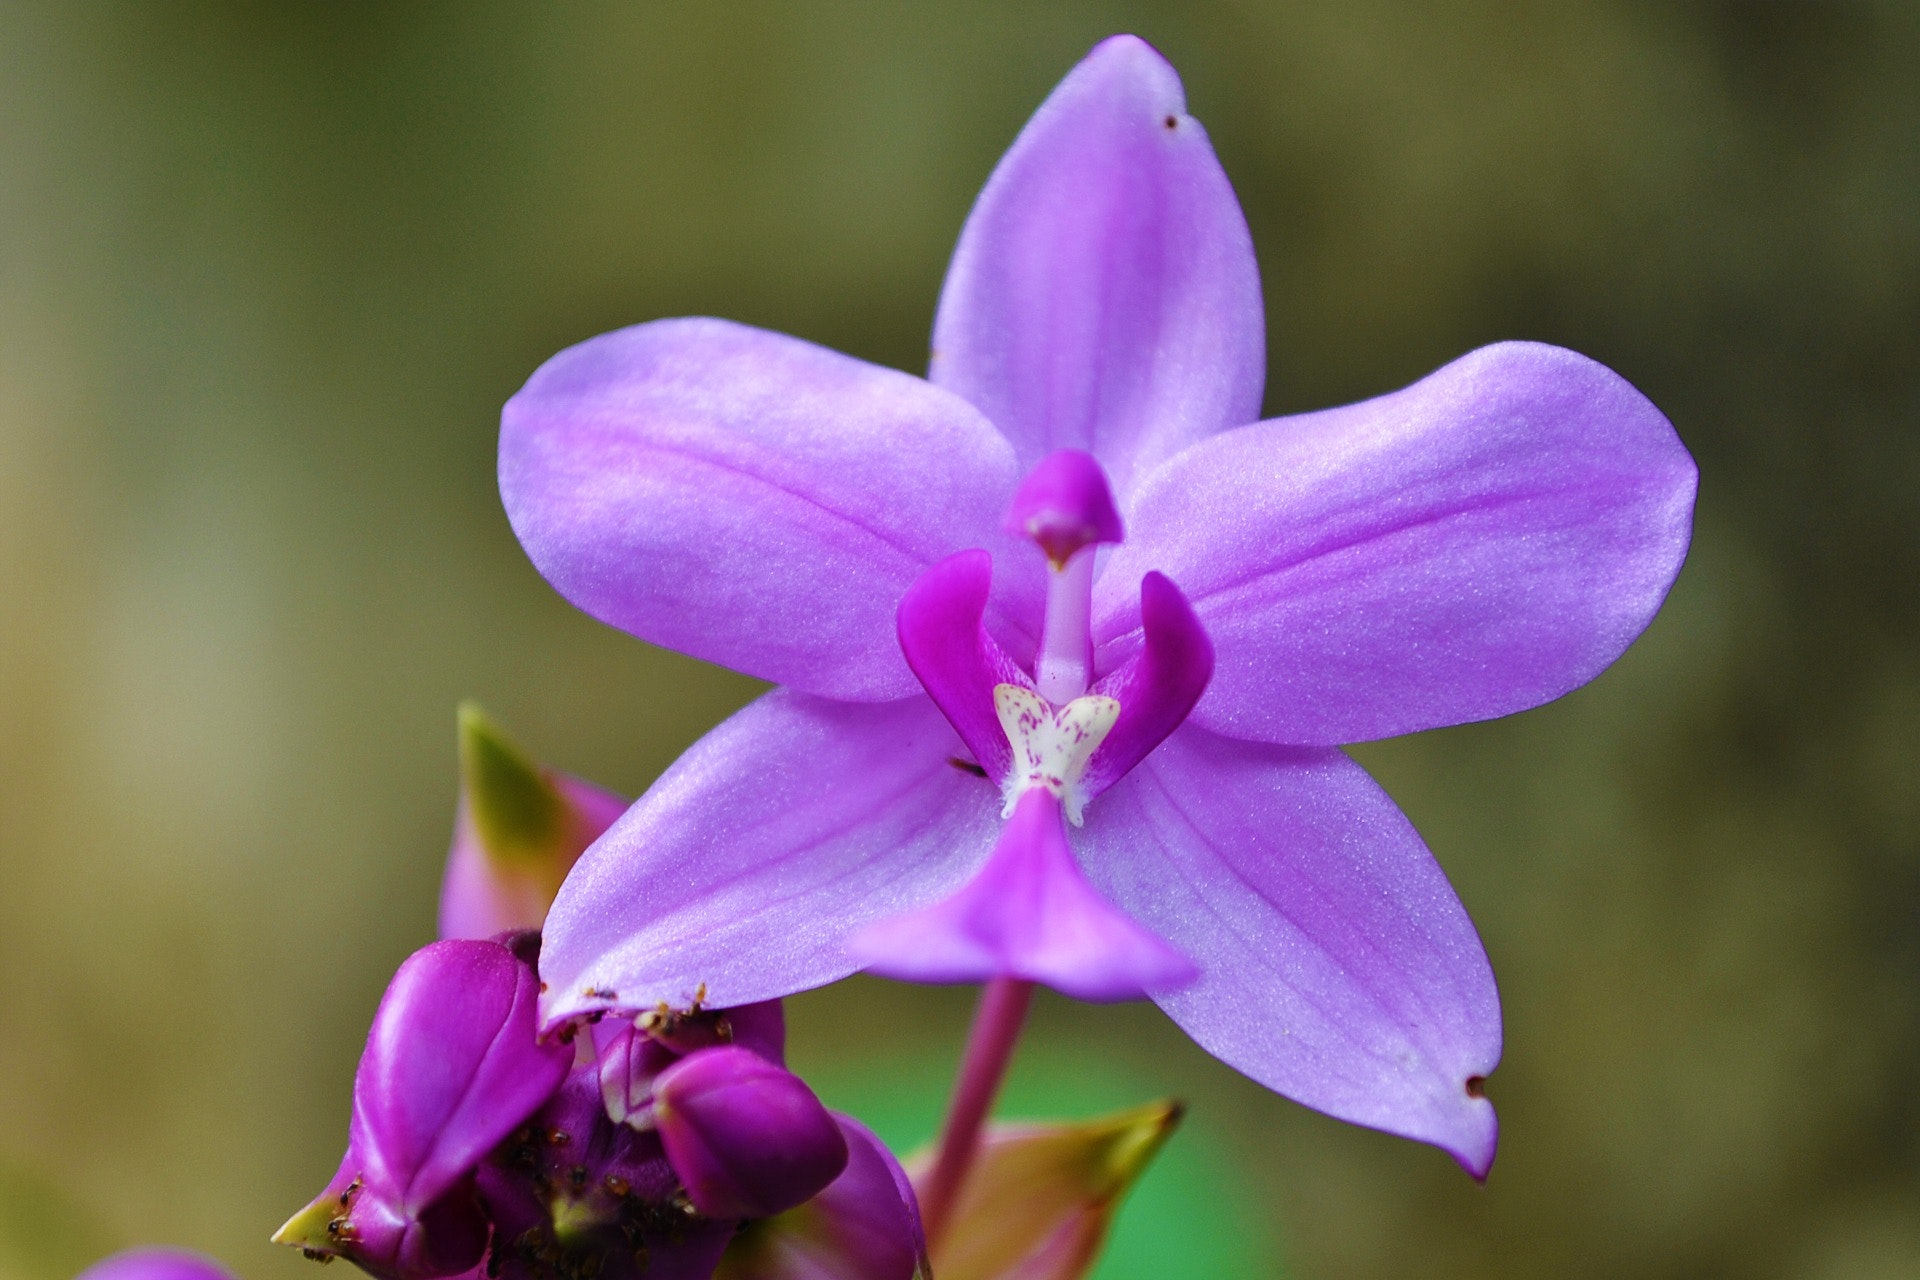 Stock image of a light purple orchid which looks vaguely similar to a vulva in sharp focus, with a blurry greenish background